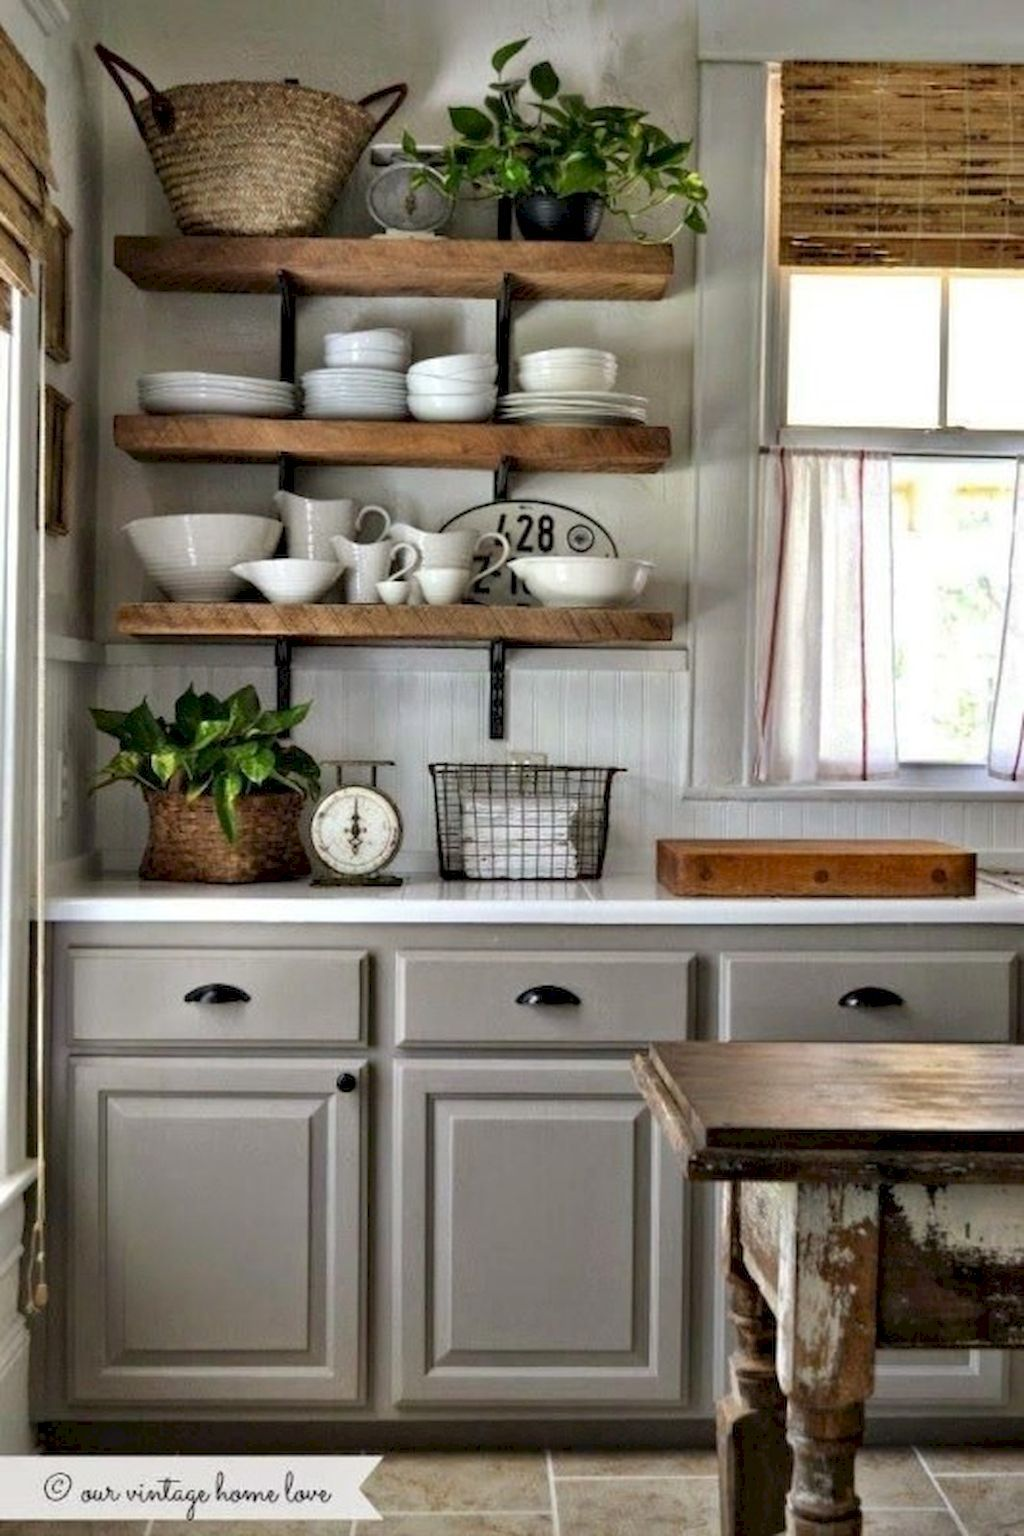 Stunning 85 rustic kitchen decor with open shelves ideas https insidecorate com